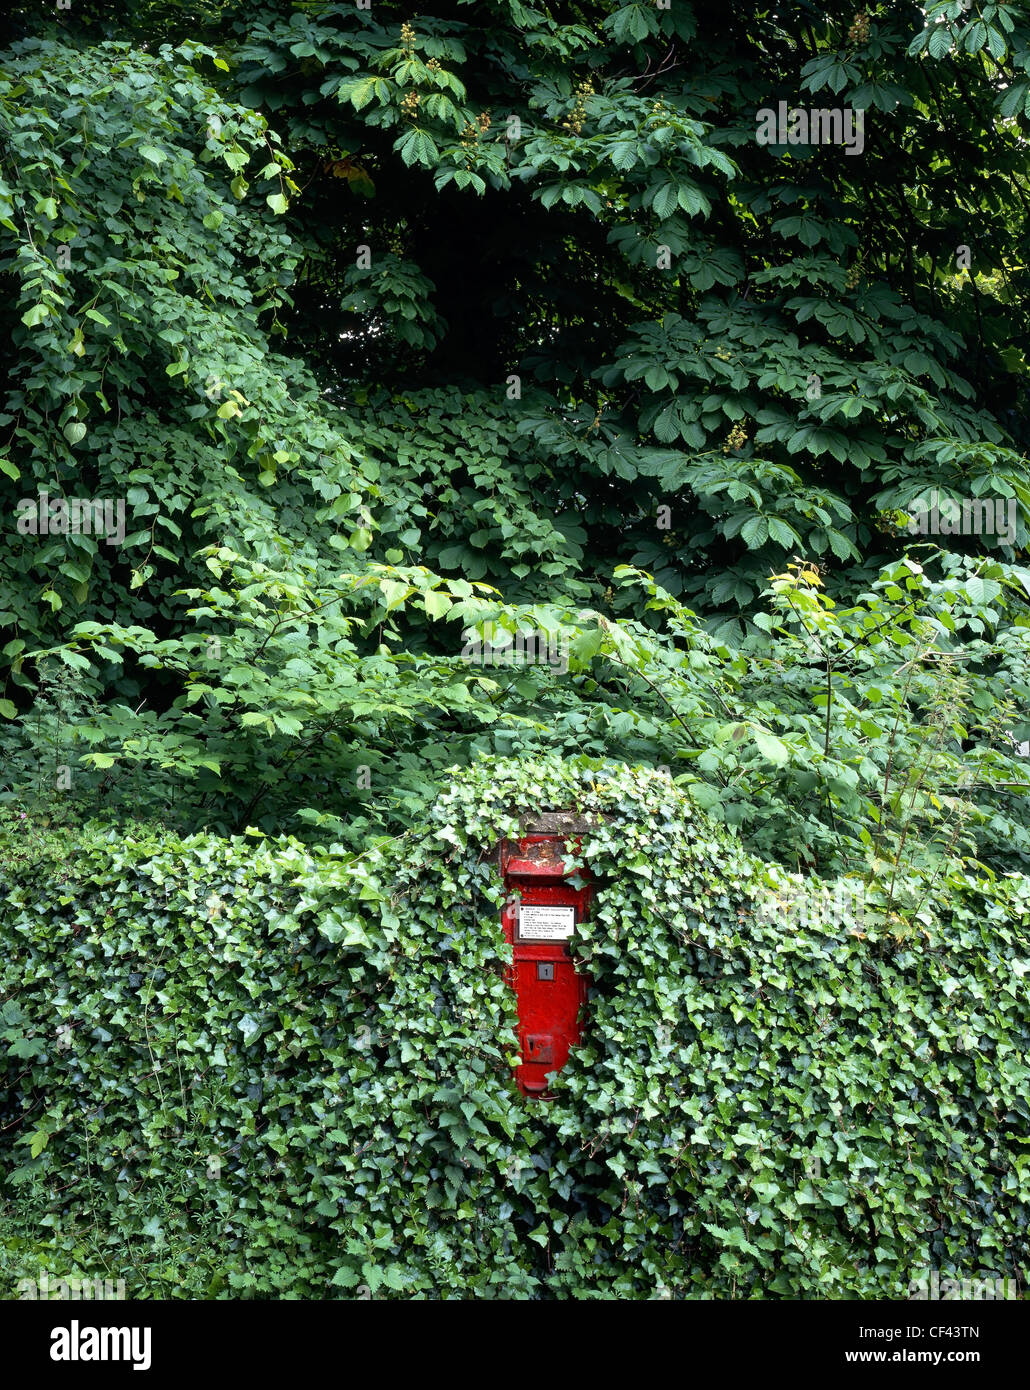 An ivy-clad rural letterbox against a flourishing leafy background. - Stock Image